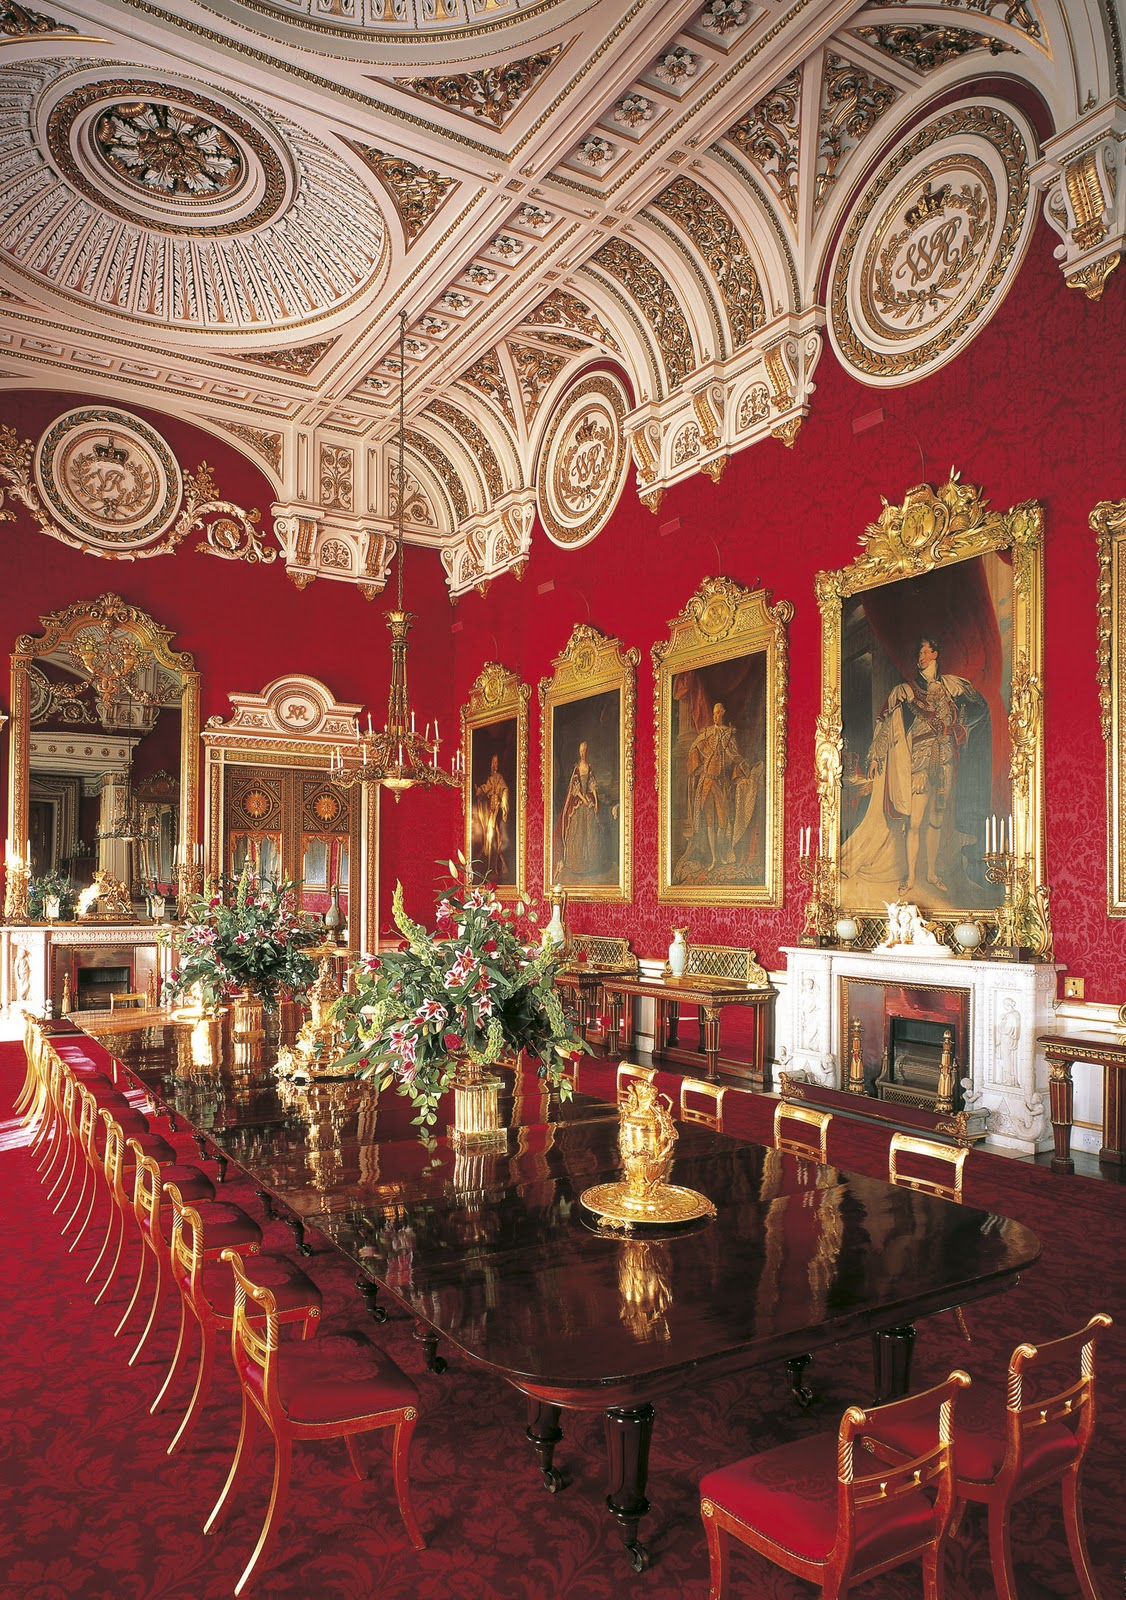 Throne room buckingham palace - After Seeing The Palace We Went To Look At The Royal Stables They Have A Proper Name But I Can T Remember It Right Now This Is Where We Saw These Amazing